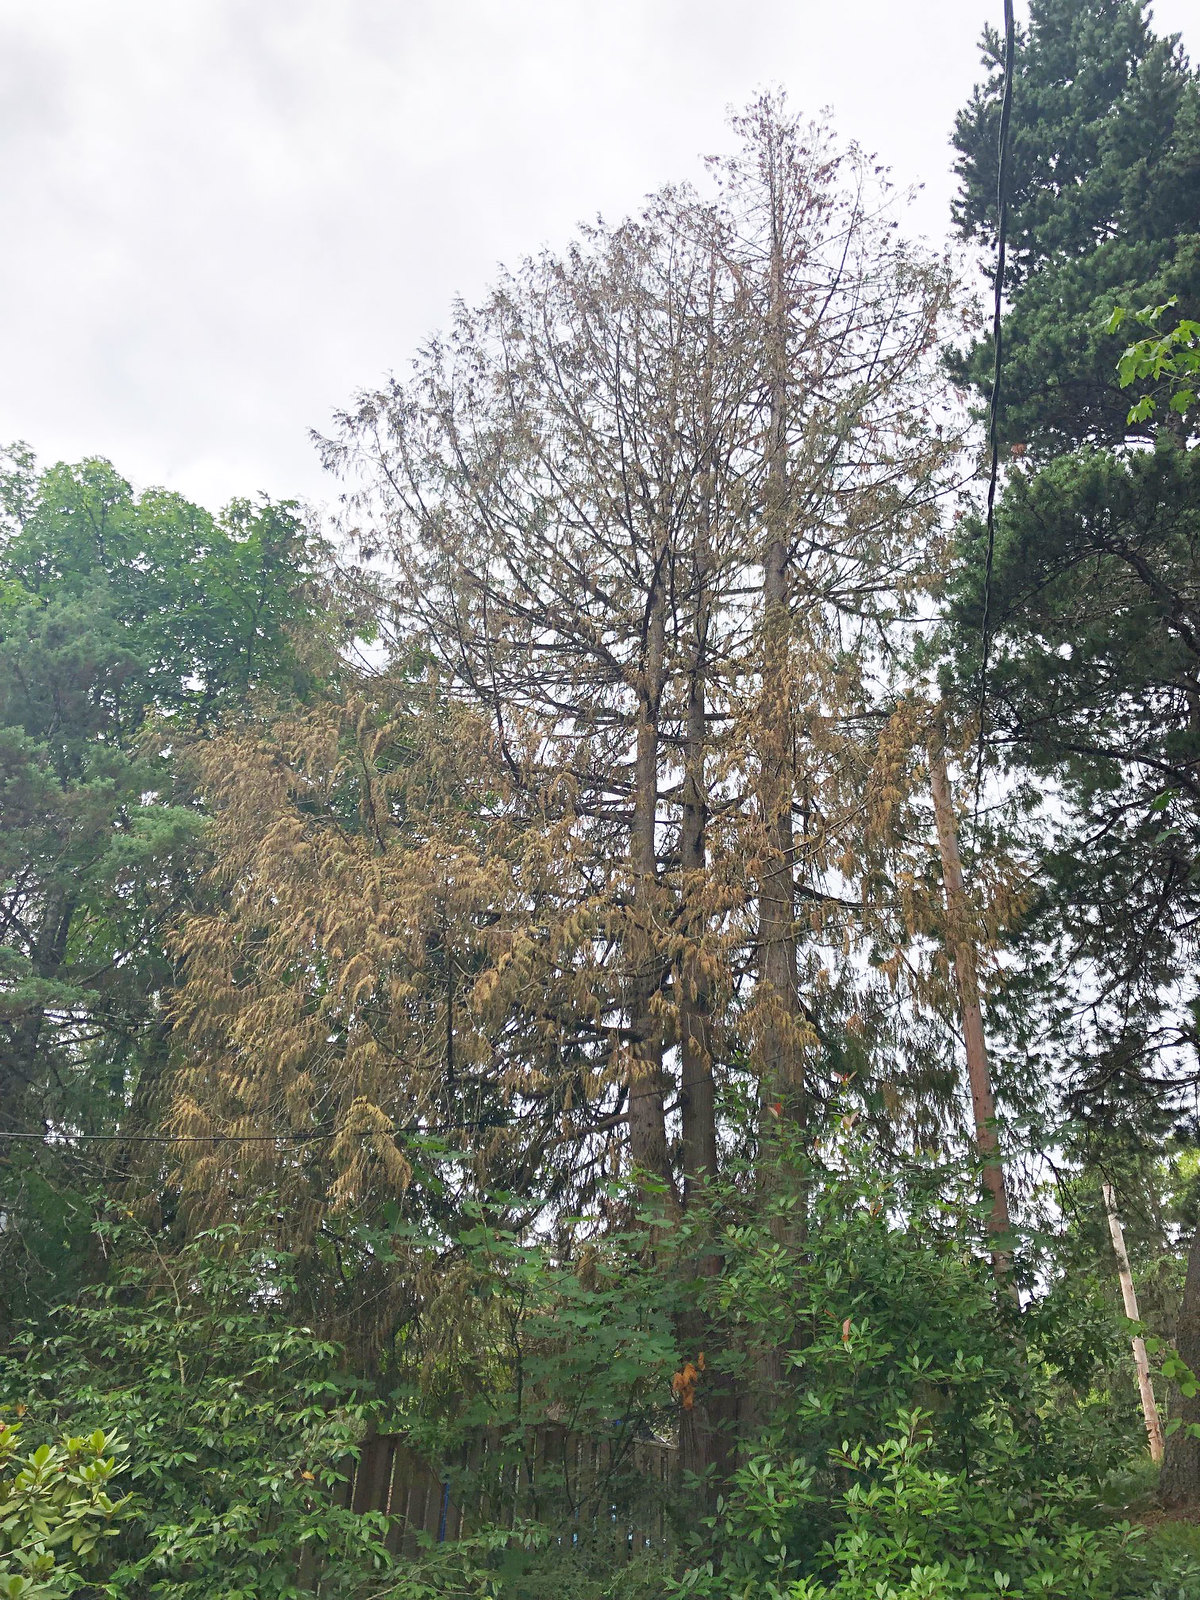 Western Oregon conifers continue to show damage due to drought